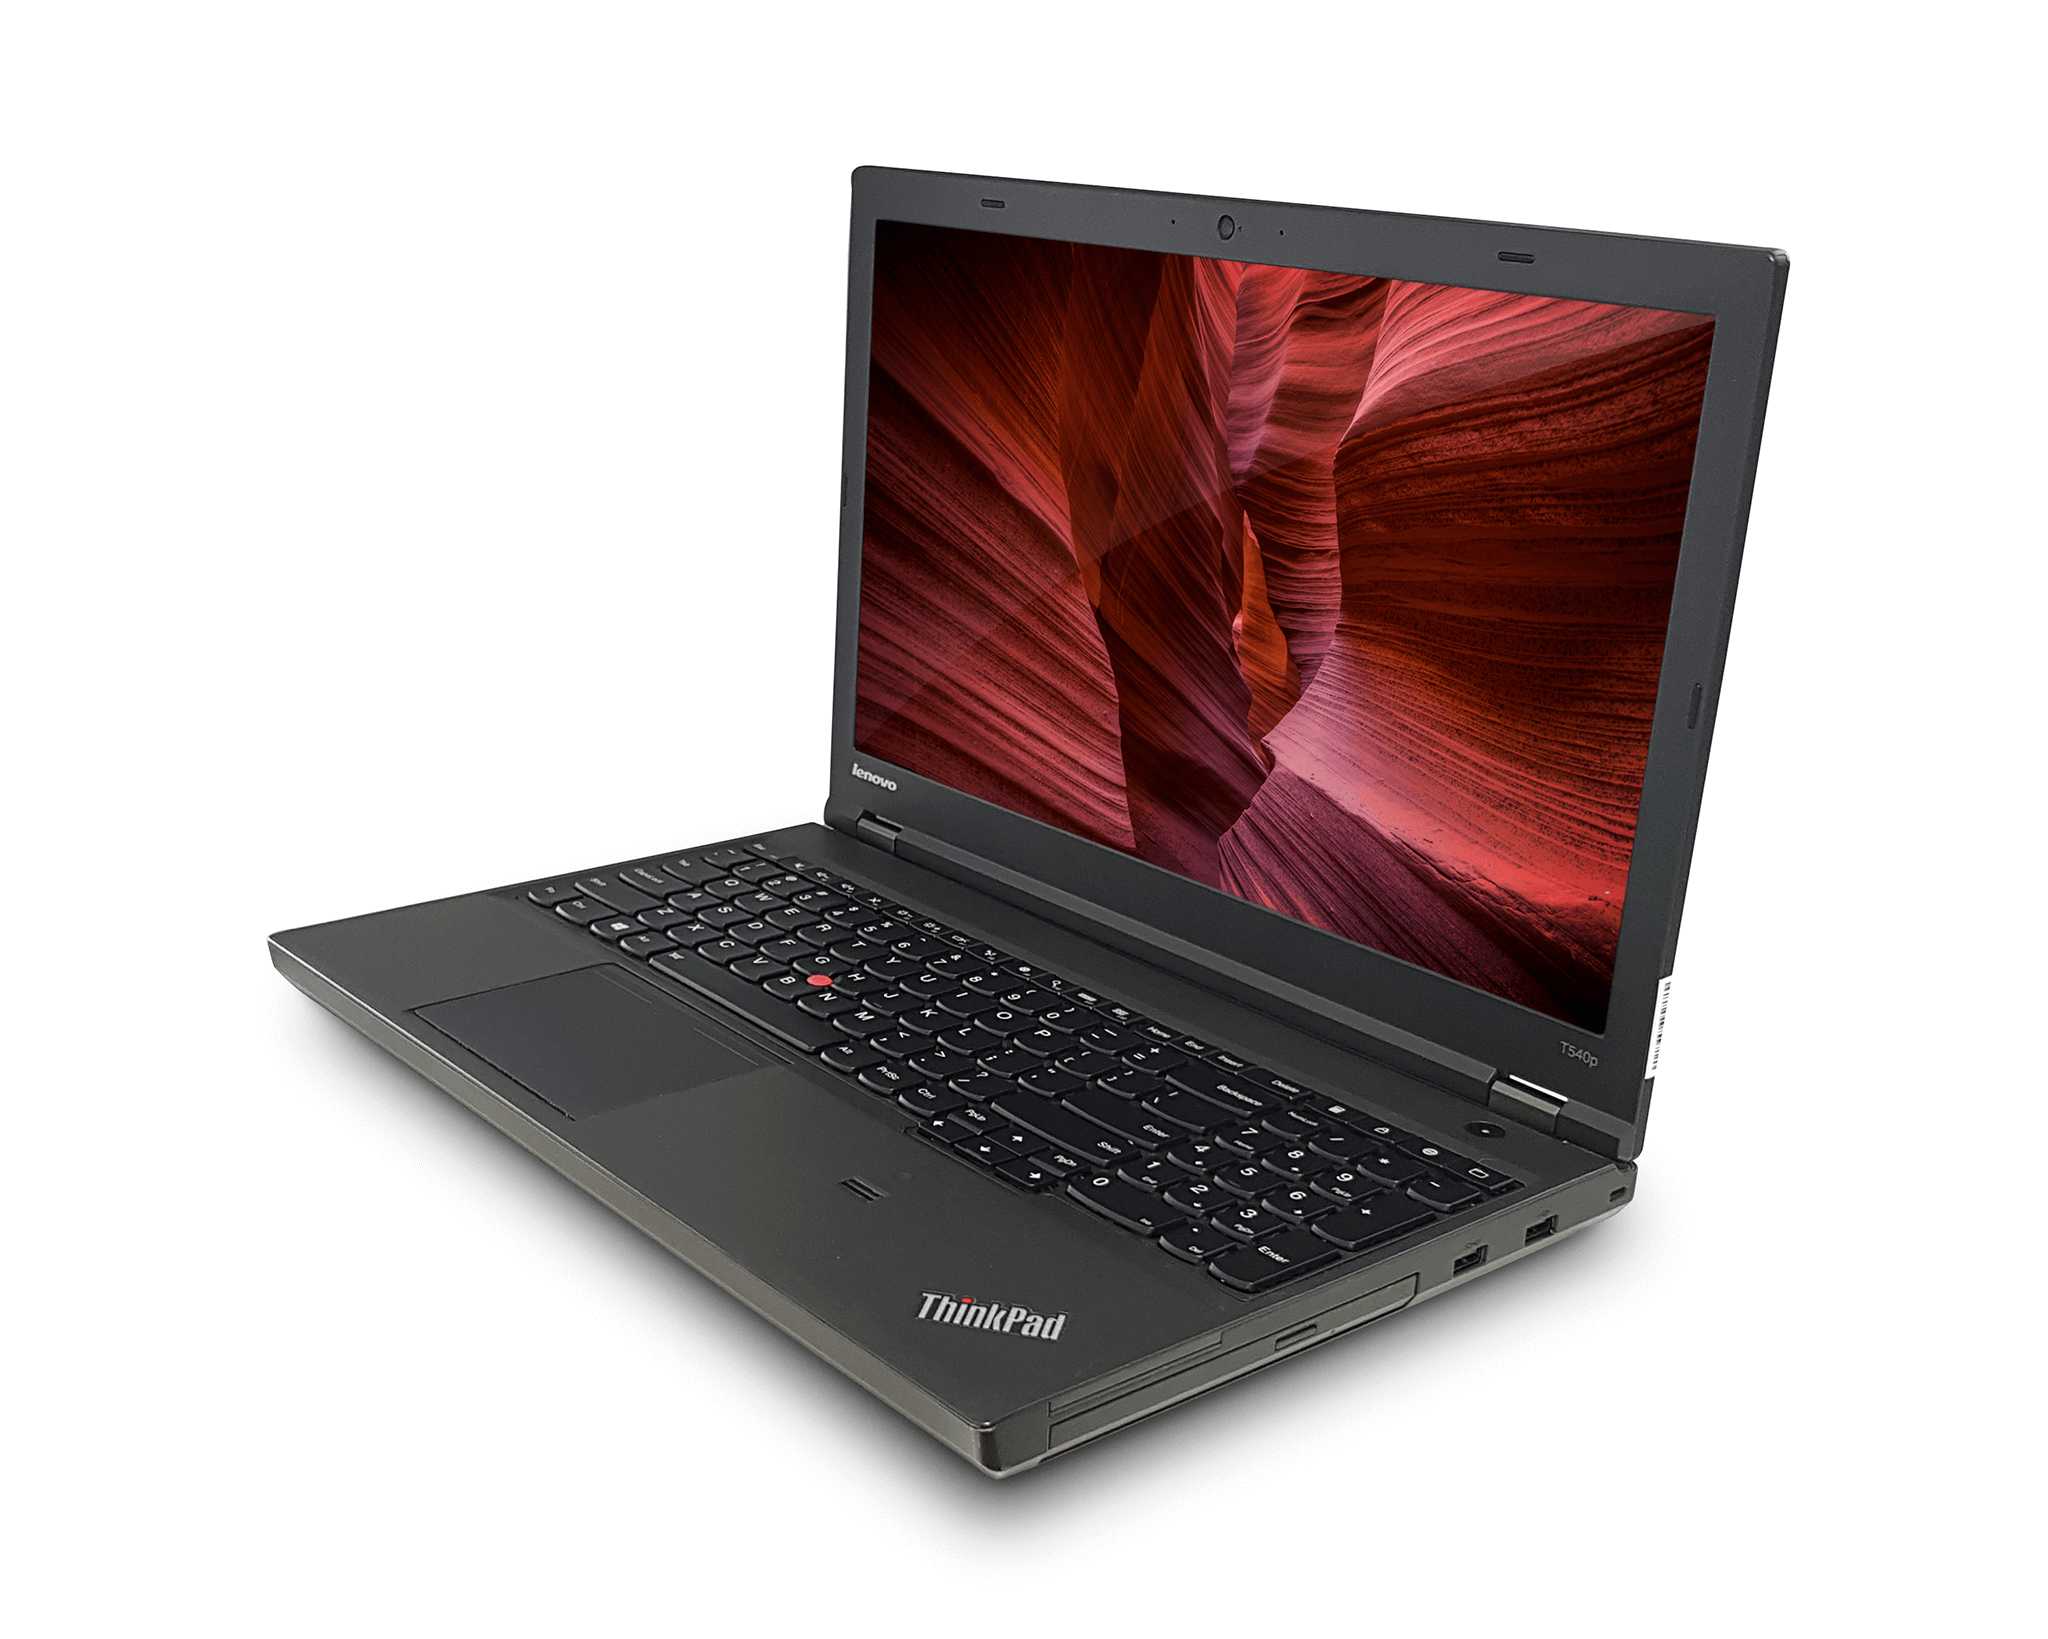 LENOVO THINKPAD T540P I5-4210M 2,6 / 4096 MB DDR3L / 500 GB / DVD-RW / WINDOWS 10 PRO REF / 15,5